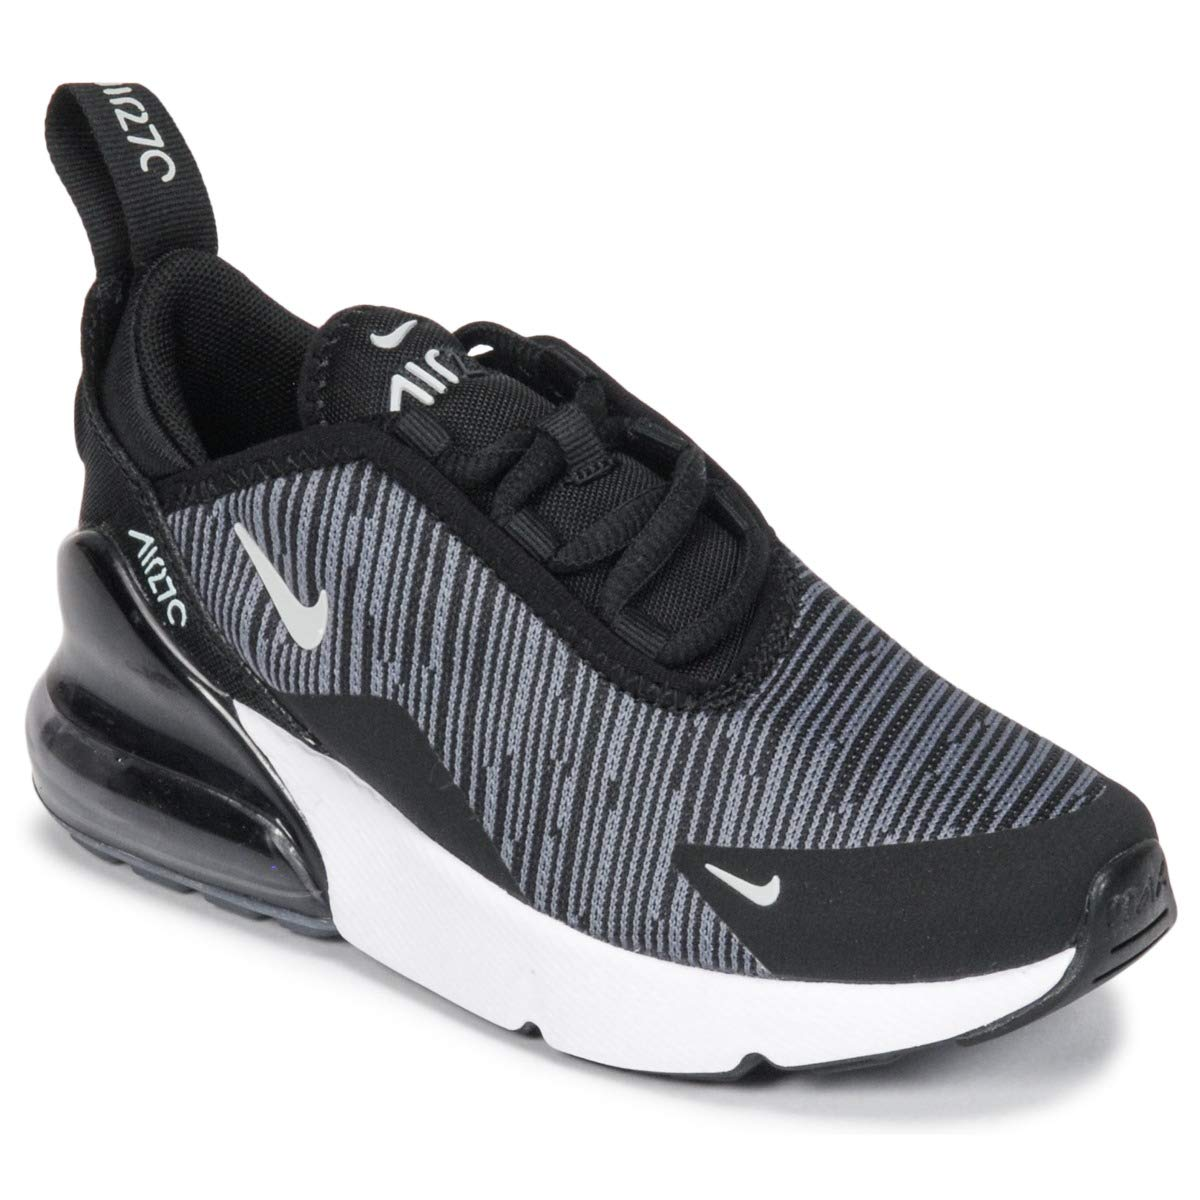 reputable site 53498 572e0 Galleon - Nike Air Max 270 (PS) Boys  Pre-School Running Shoes AO2372-008  (1Y)